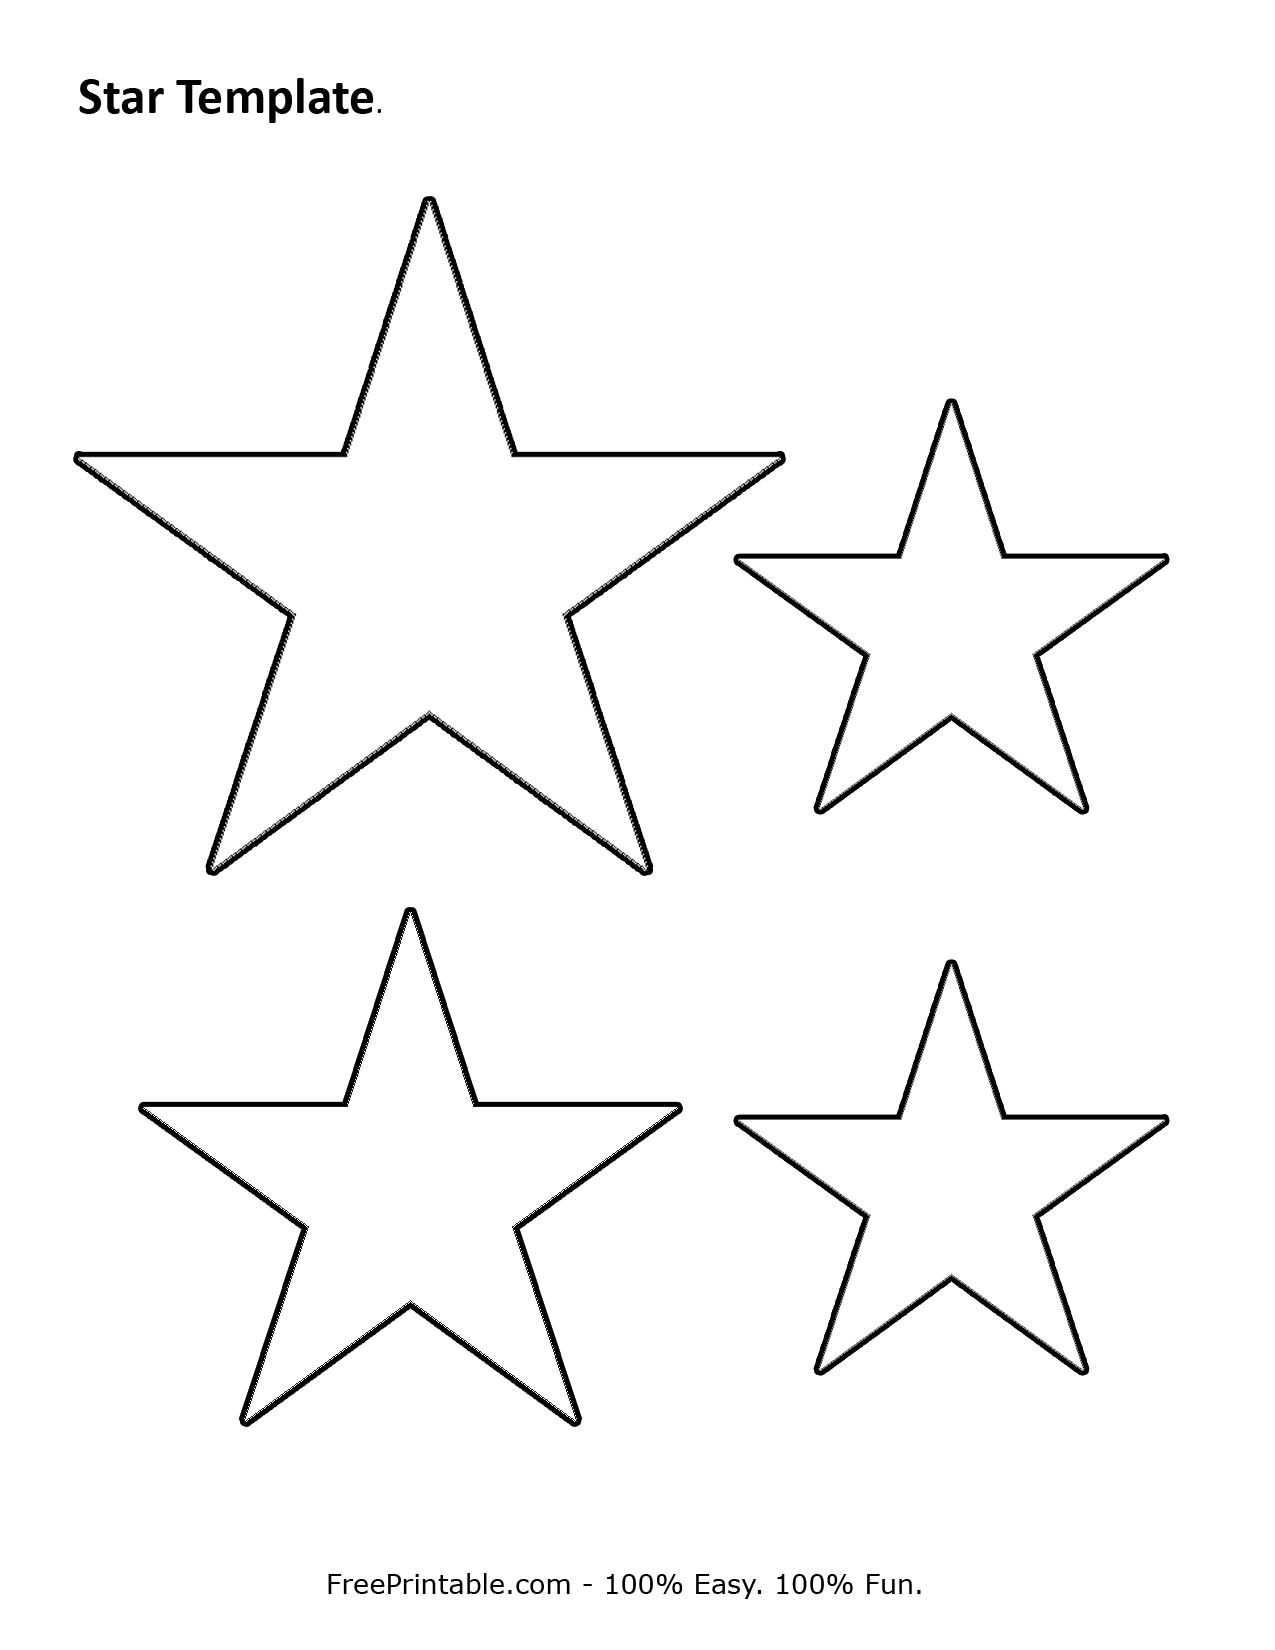 graphic regarding Printable Star Template named Personalize Your Cost-free Printable Star Template Stencil Star